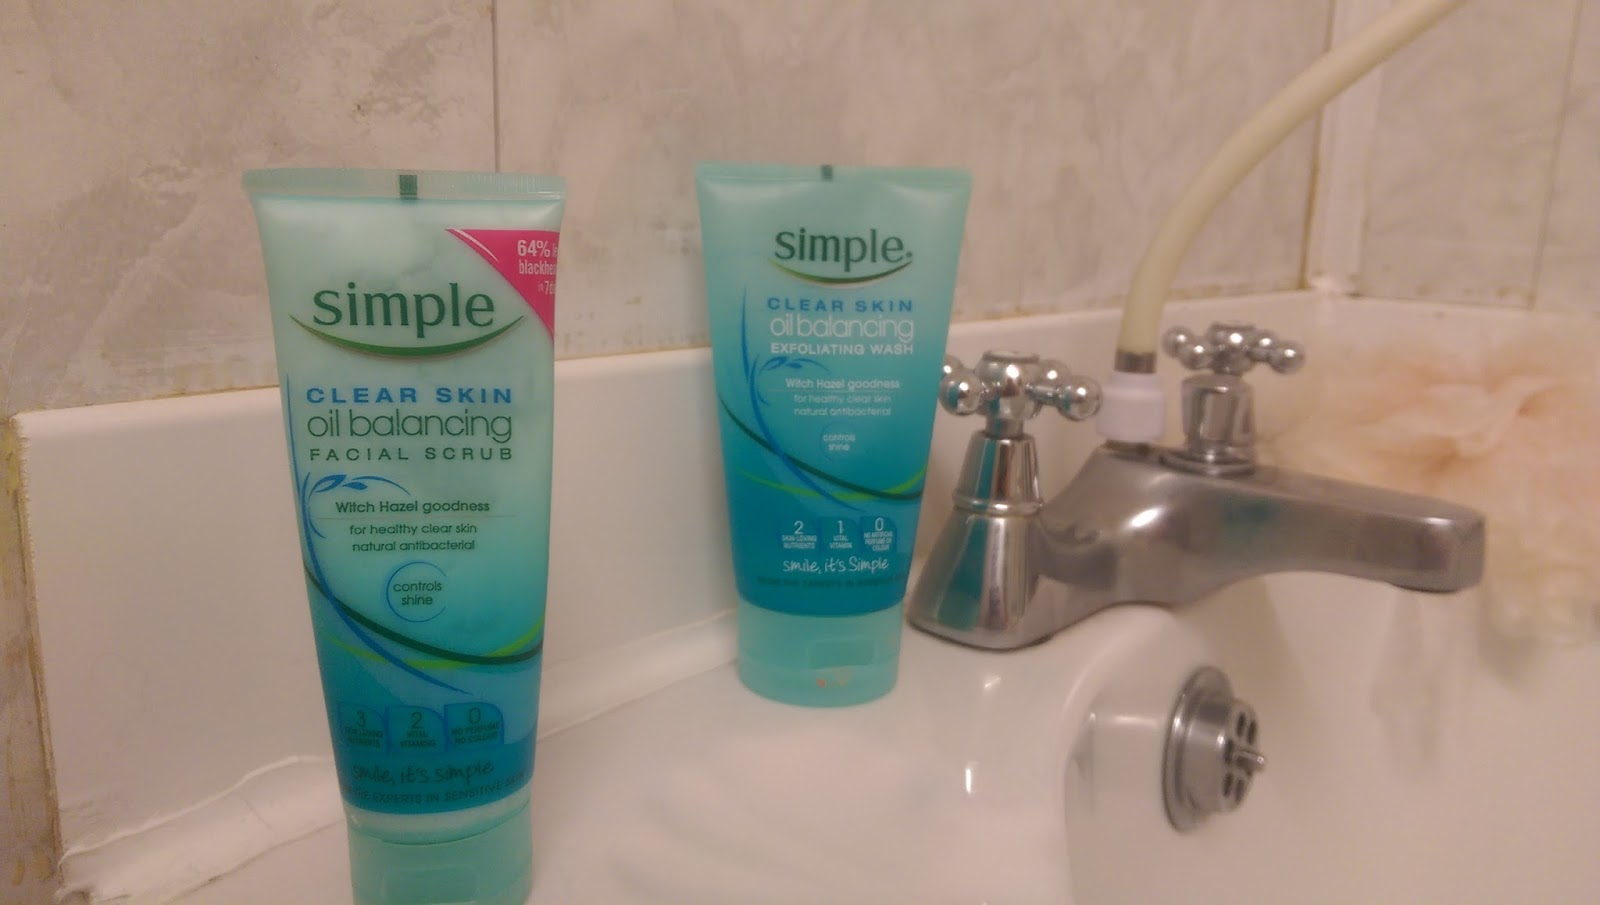 Clear Skin Oil Balancing Exfoliating Wash by Simple #11